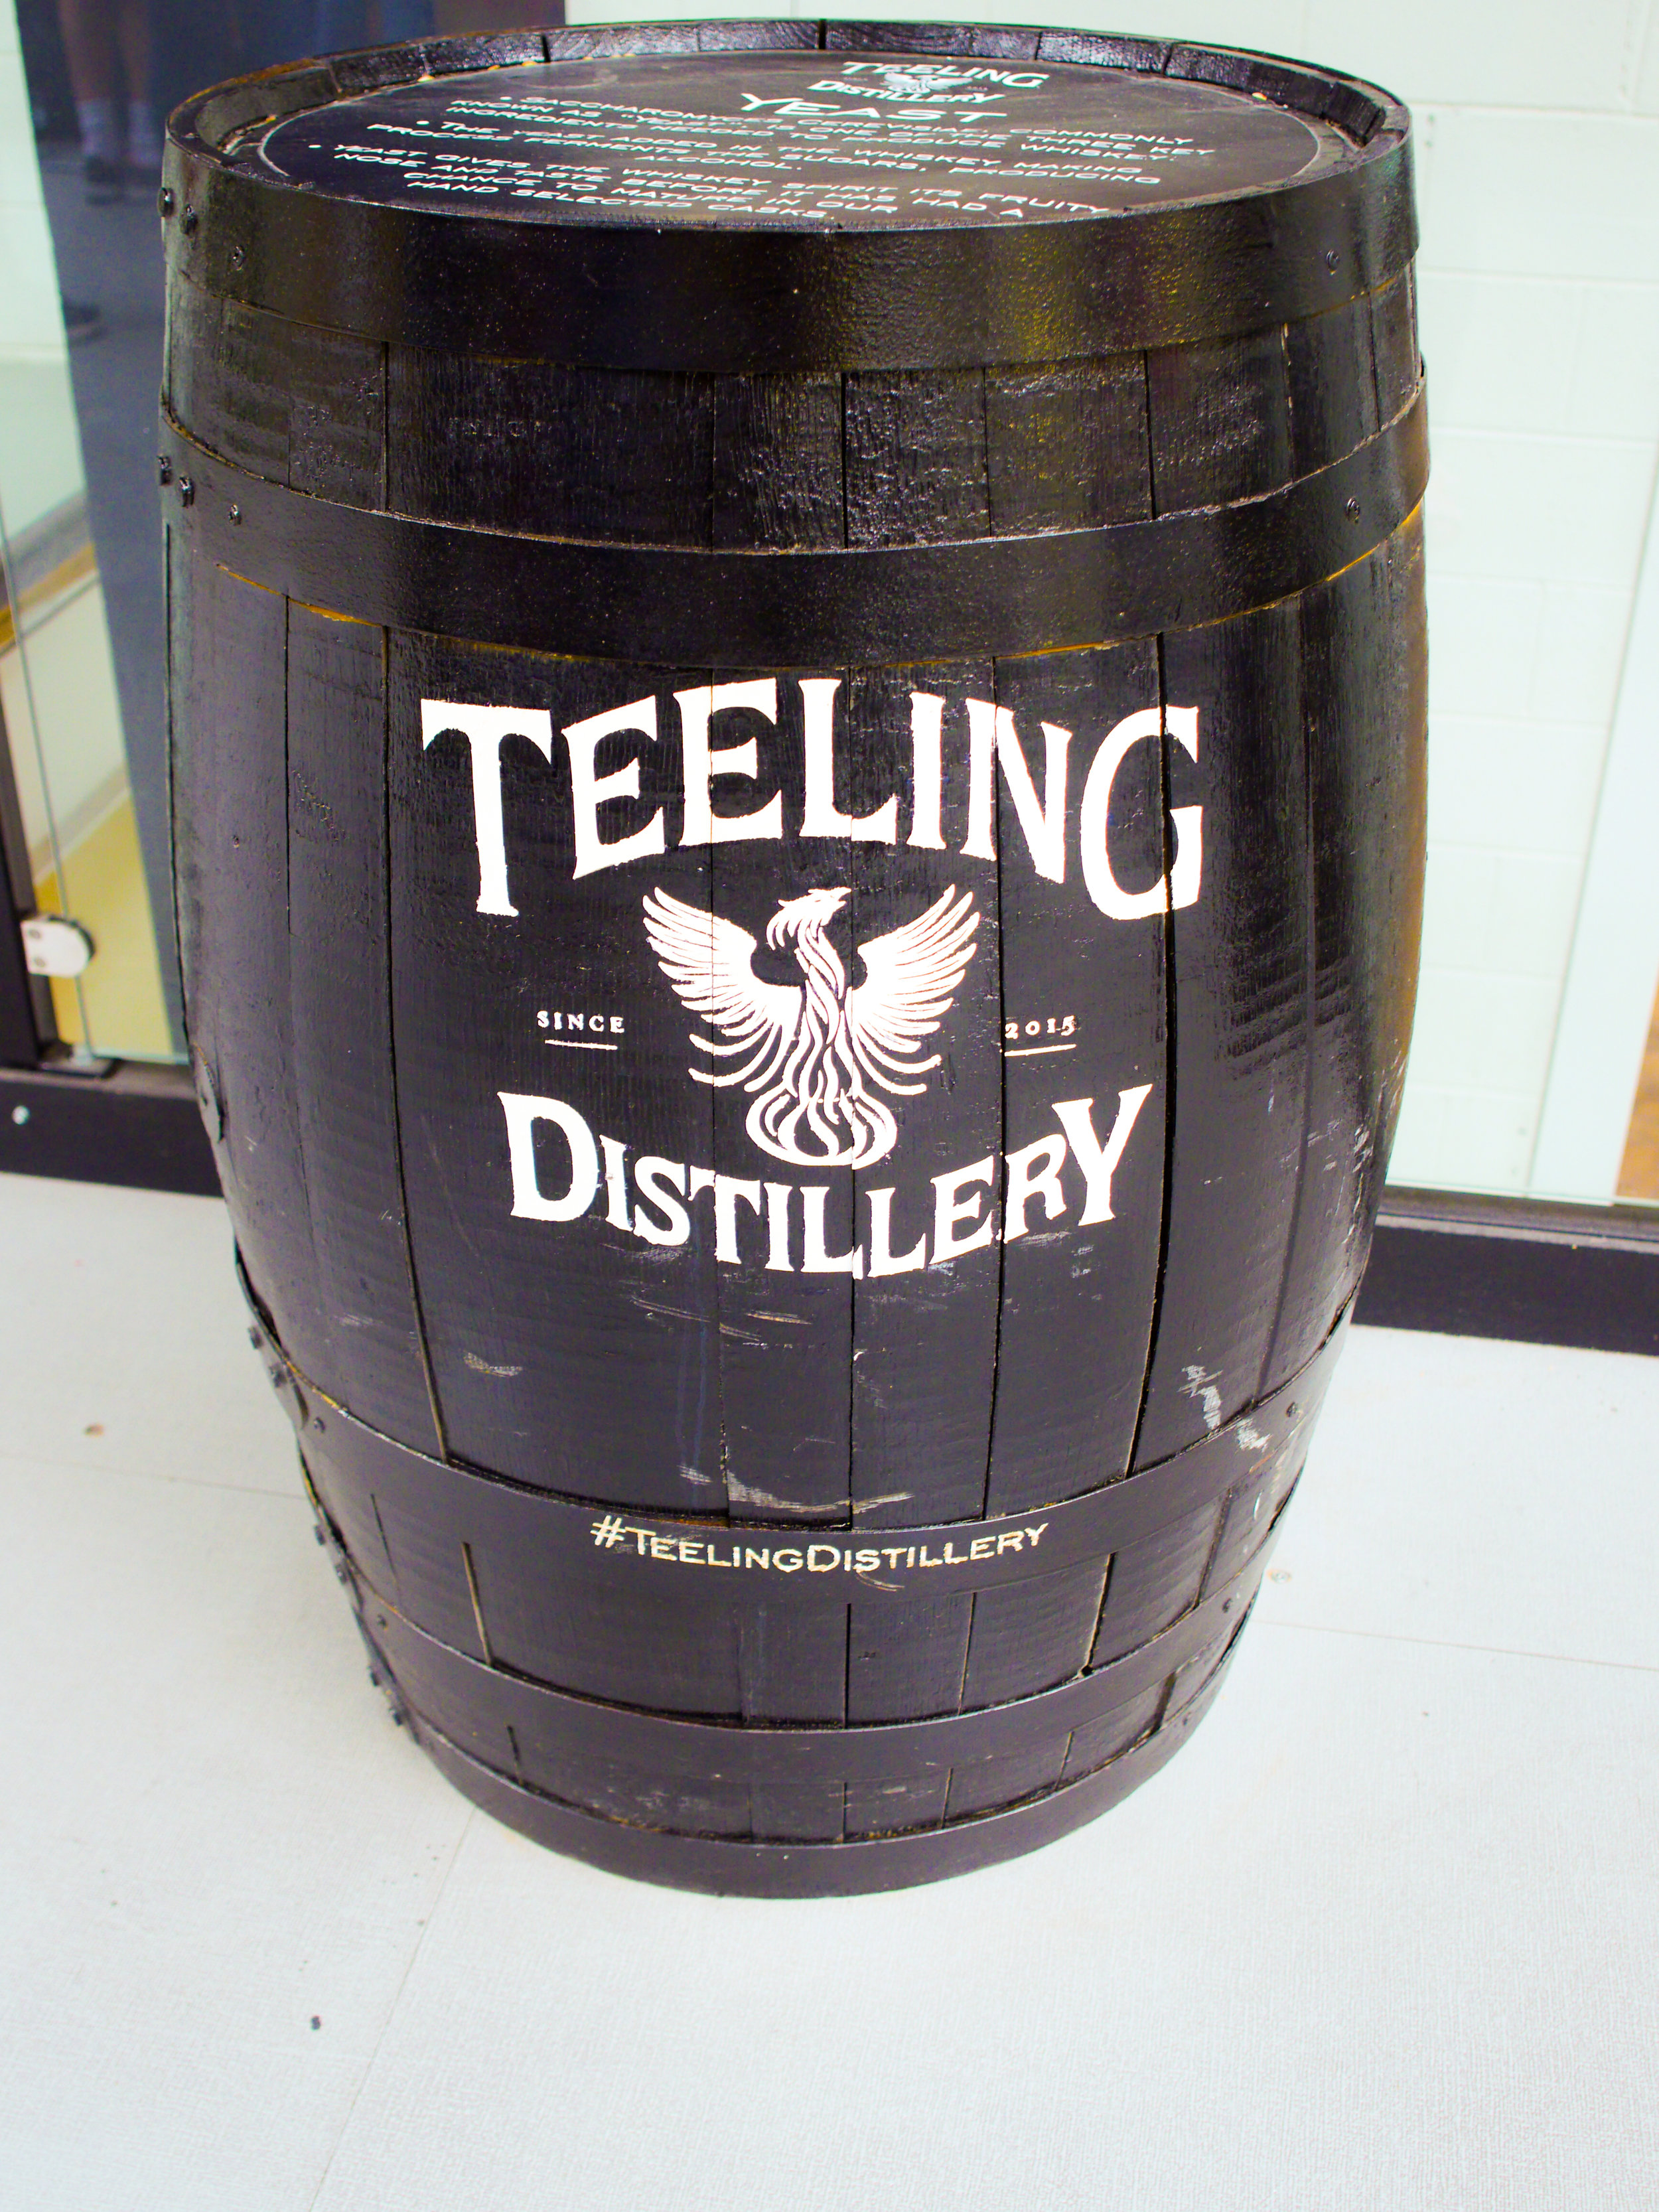 Whiskey barrel at Teeling Distillery in Dublin, Ireland